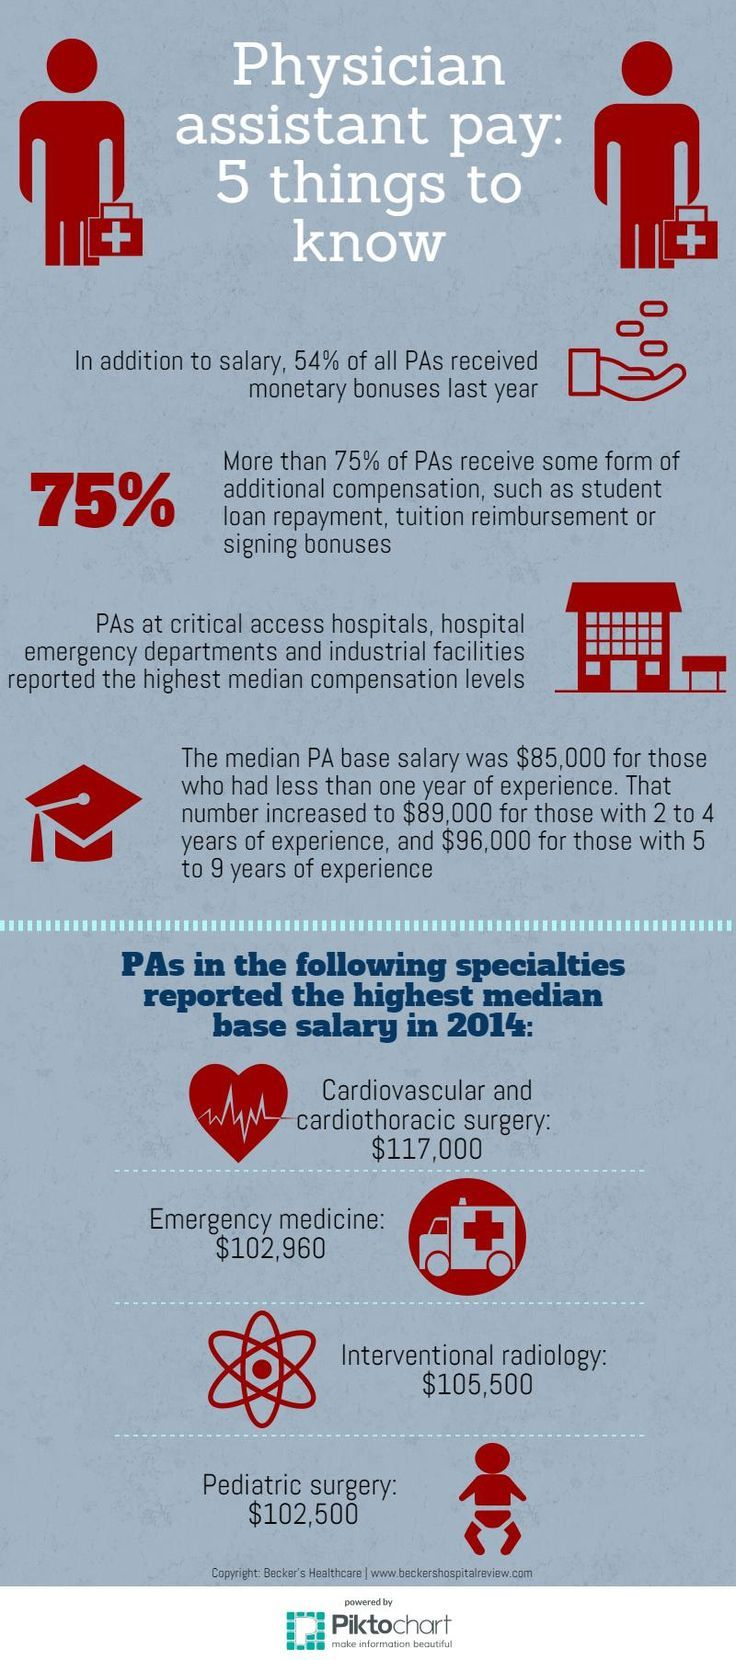 5 things to know about physician assistant pay Physician